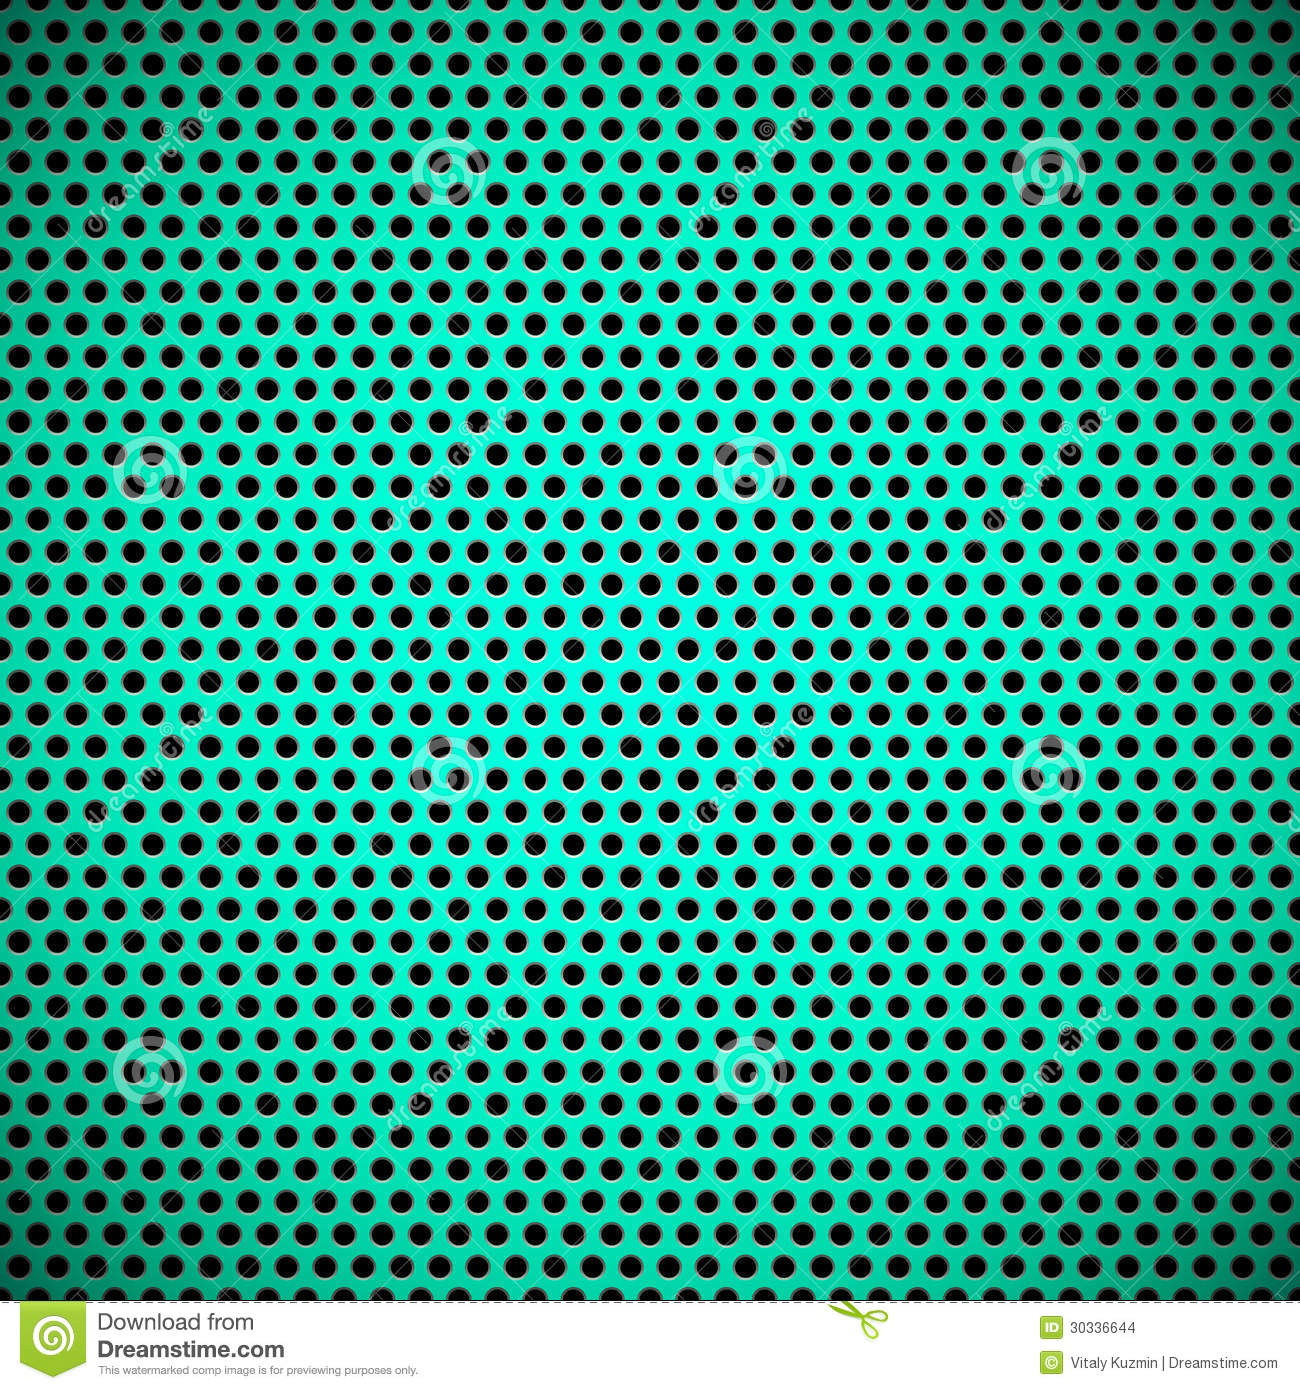 green perforated metal pattern - photo #20